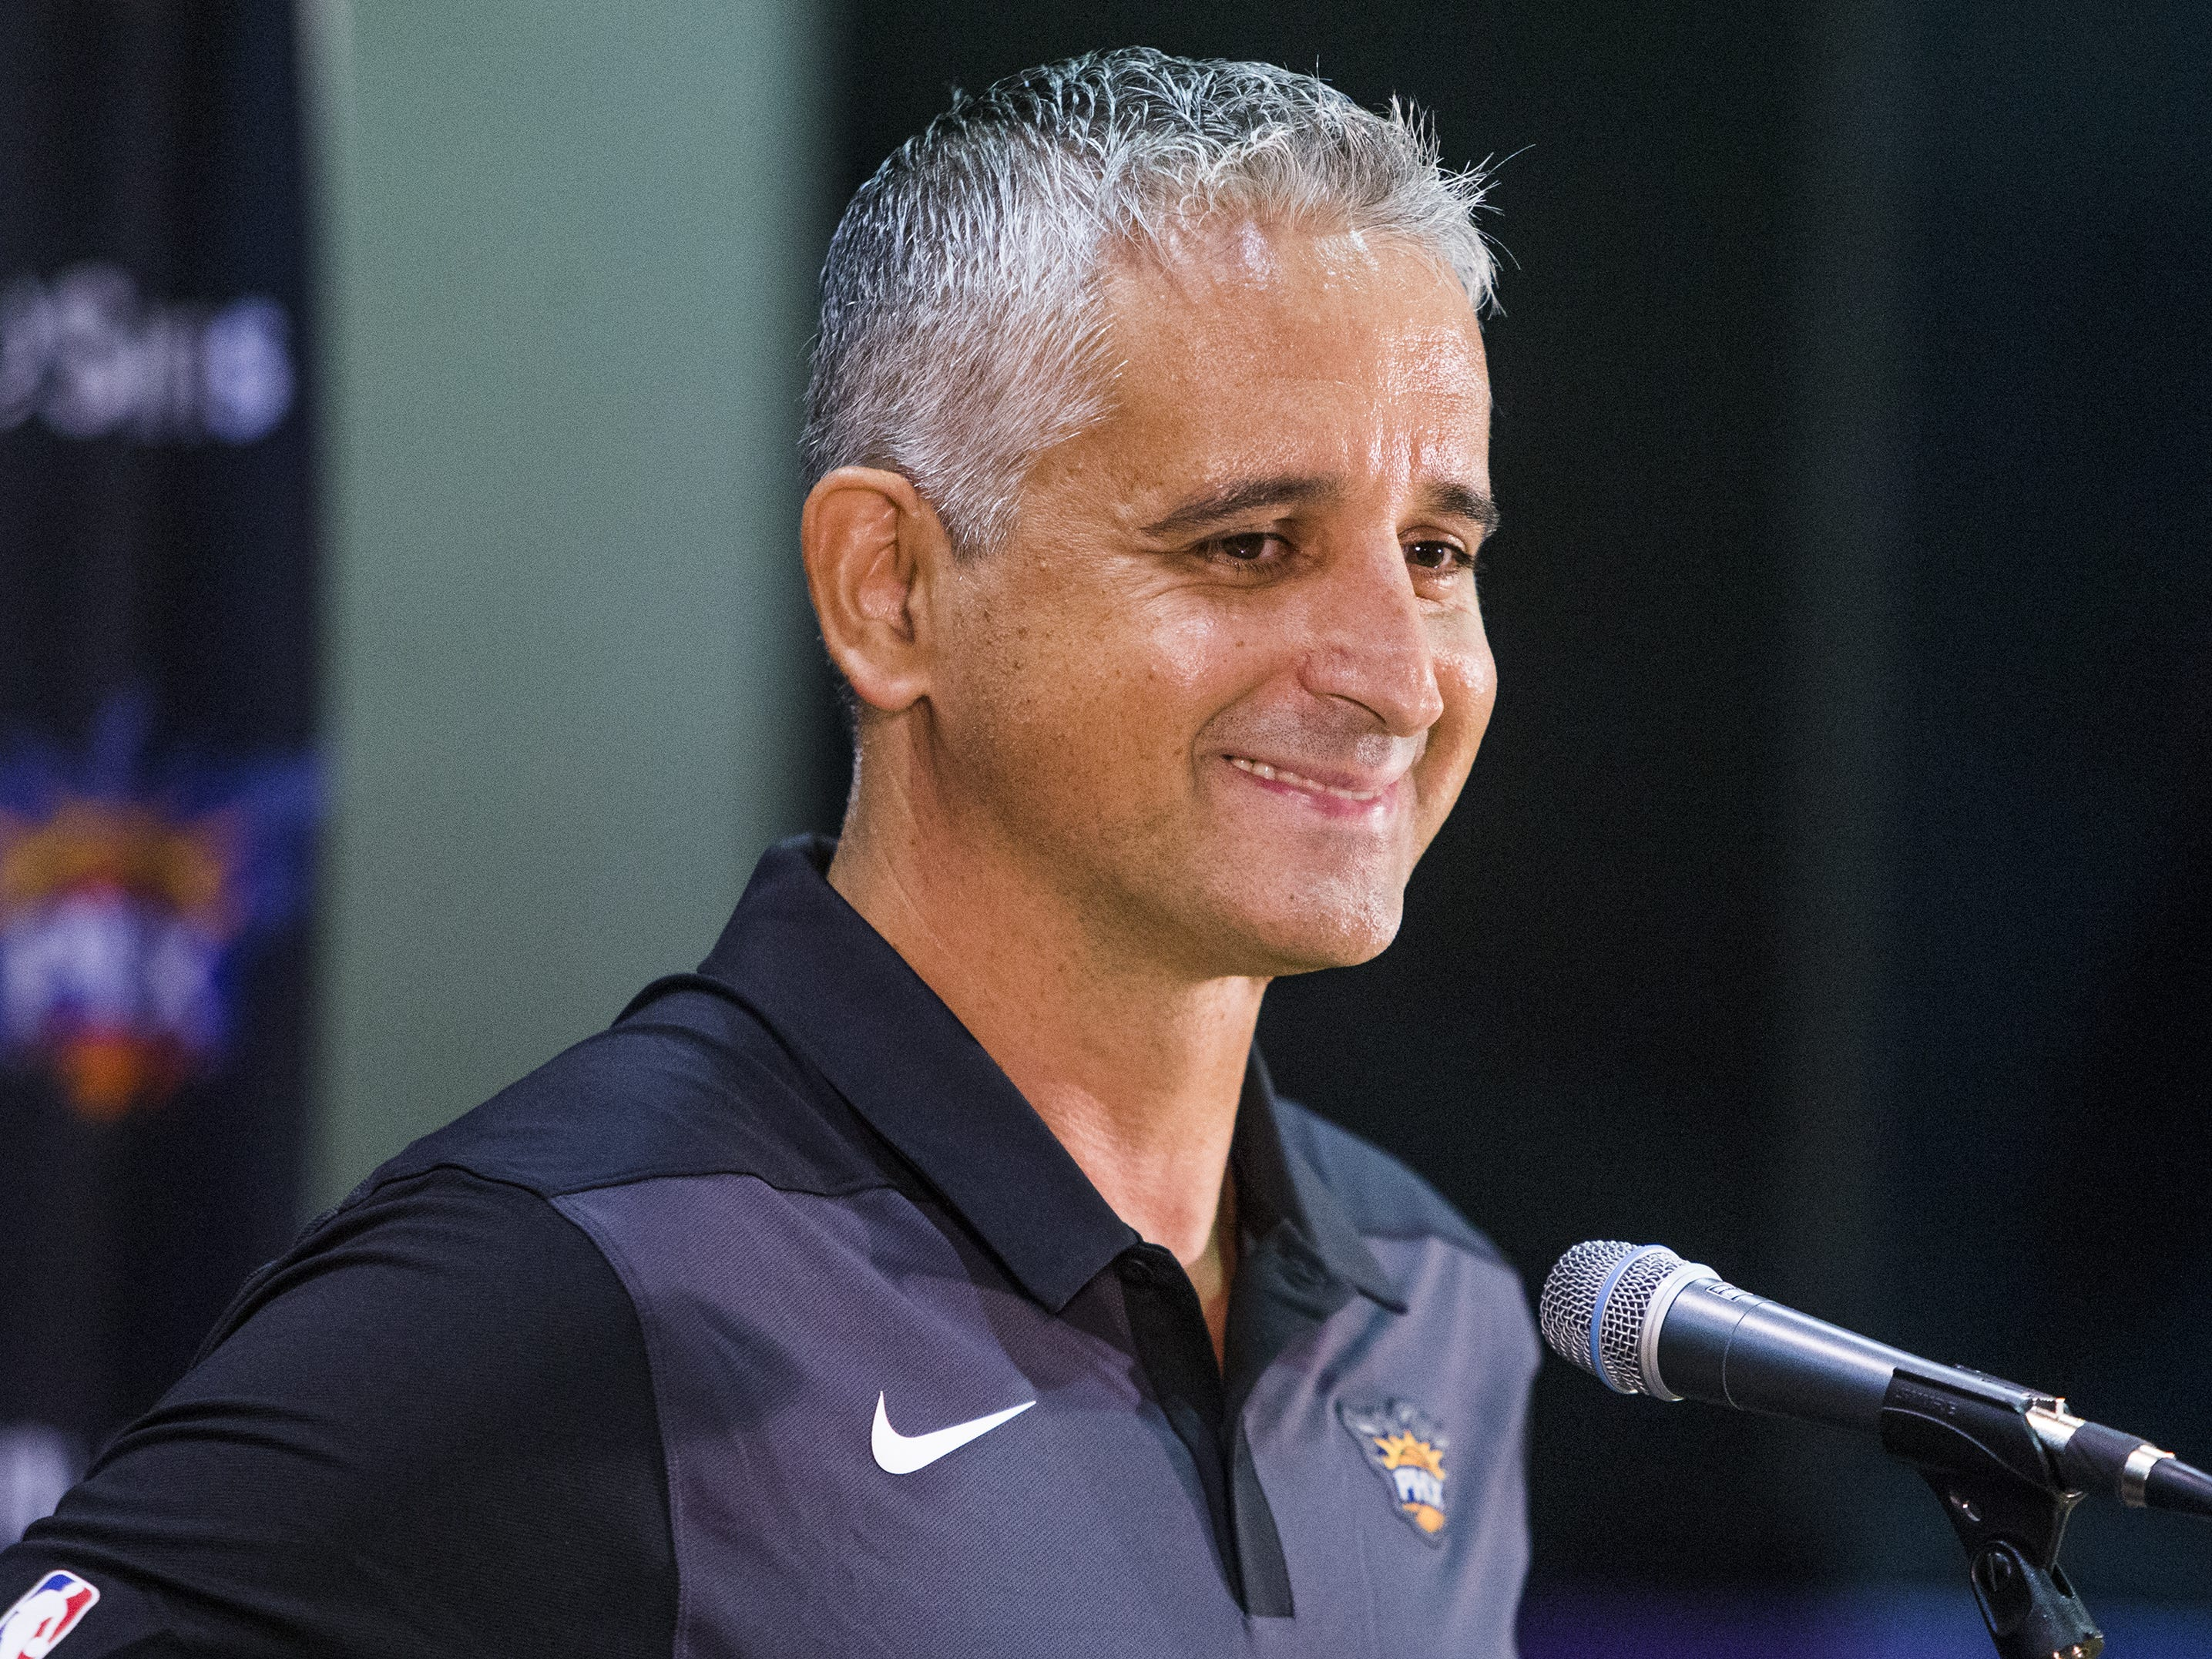 Igor Kokoskov, head coach of the Phoenix Suns, addresses the media at Phoenix Suns Media Day at Talking Stick Resort Arena in Phoenix, Monday, September 24, 2018.